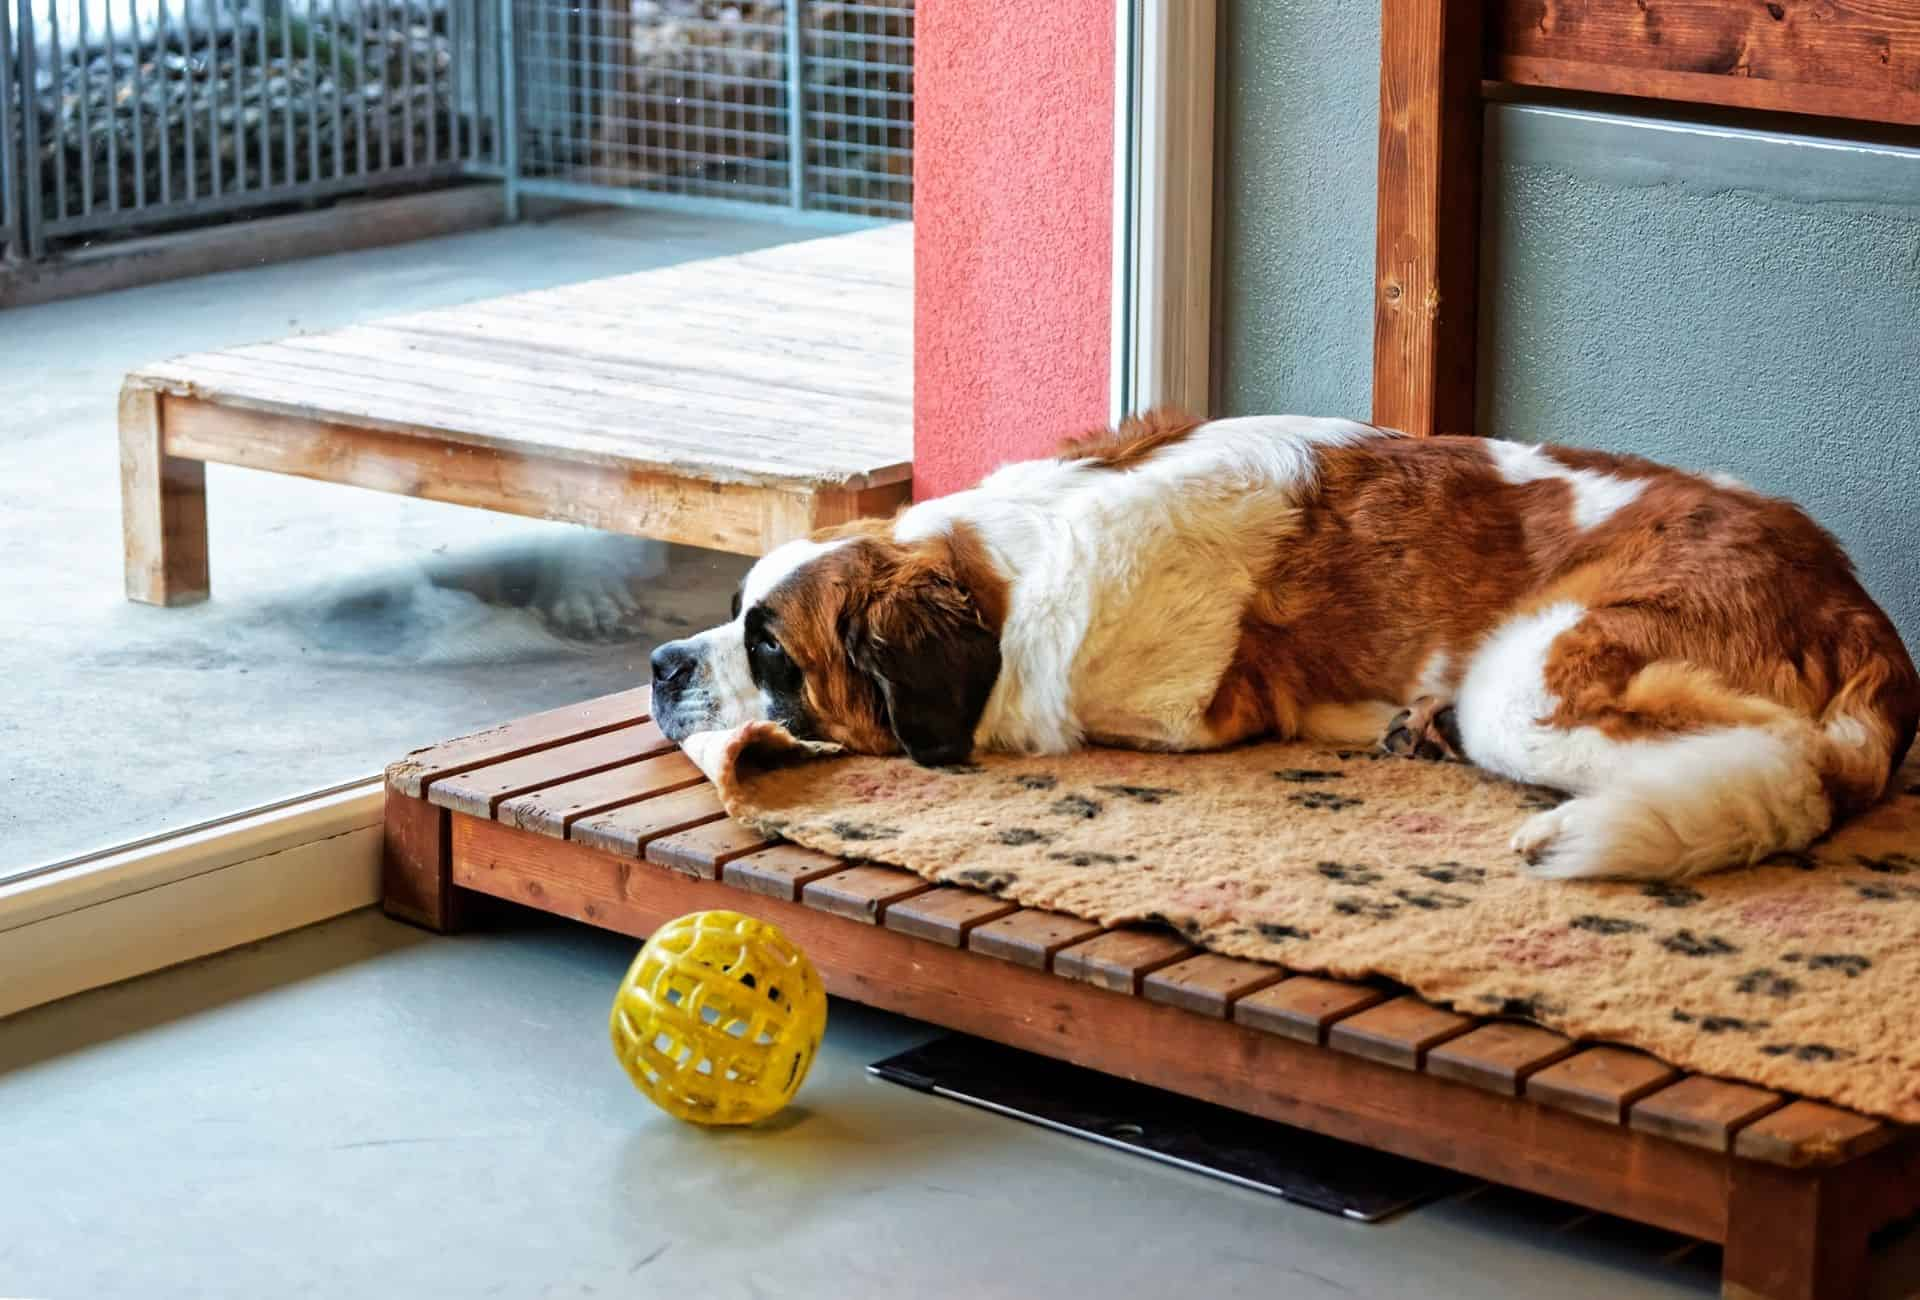 Saint Bernard laying down in a boarding kennel and looking out the window.